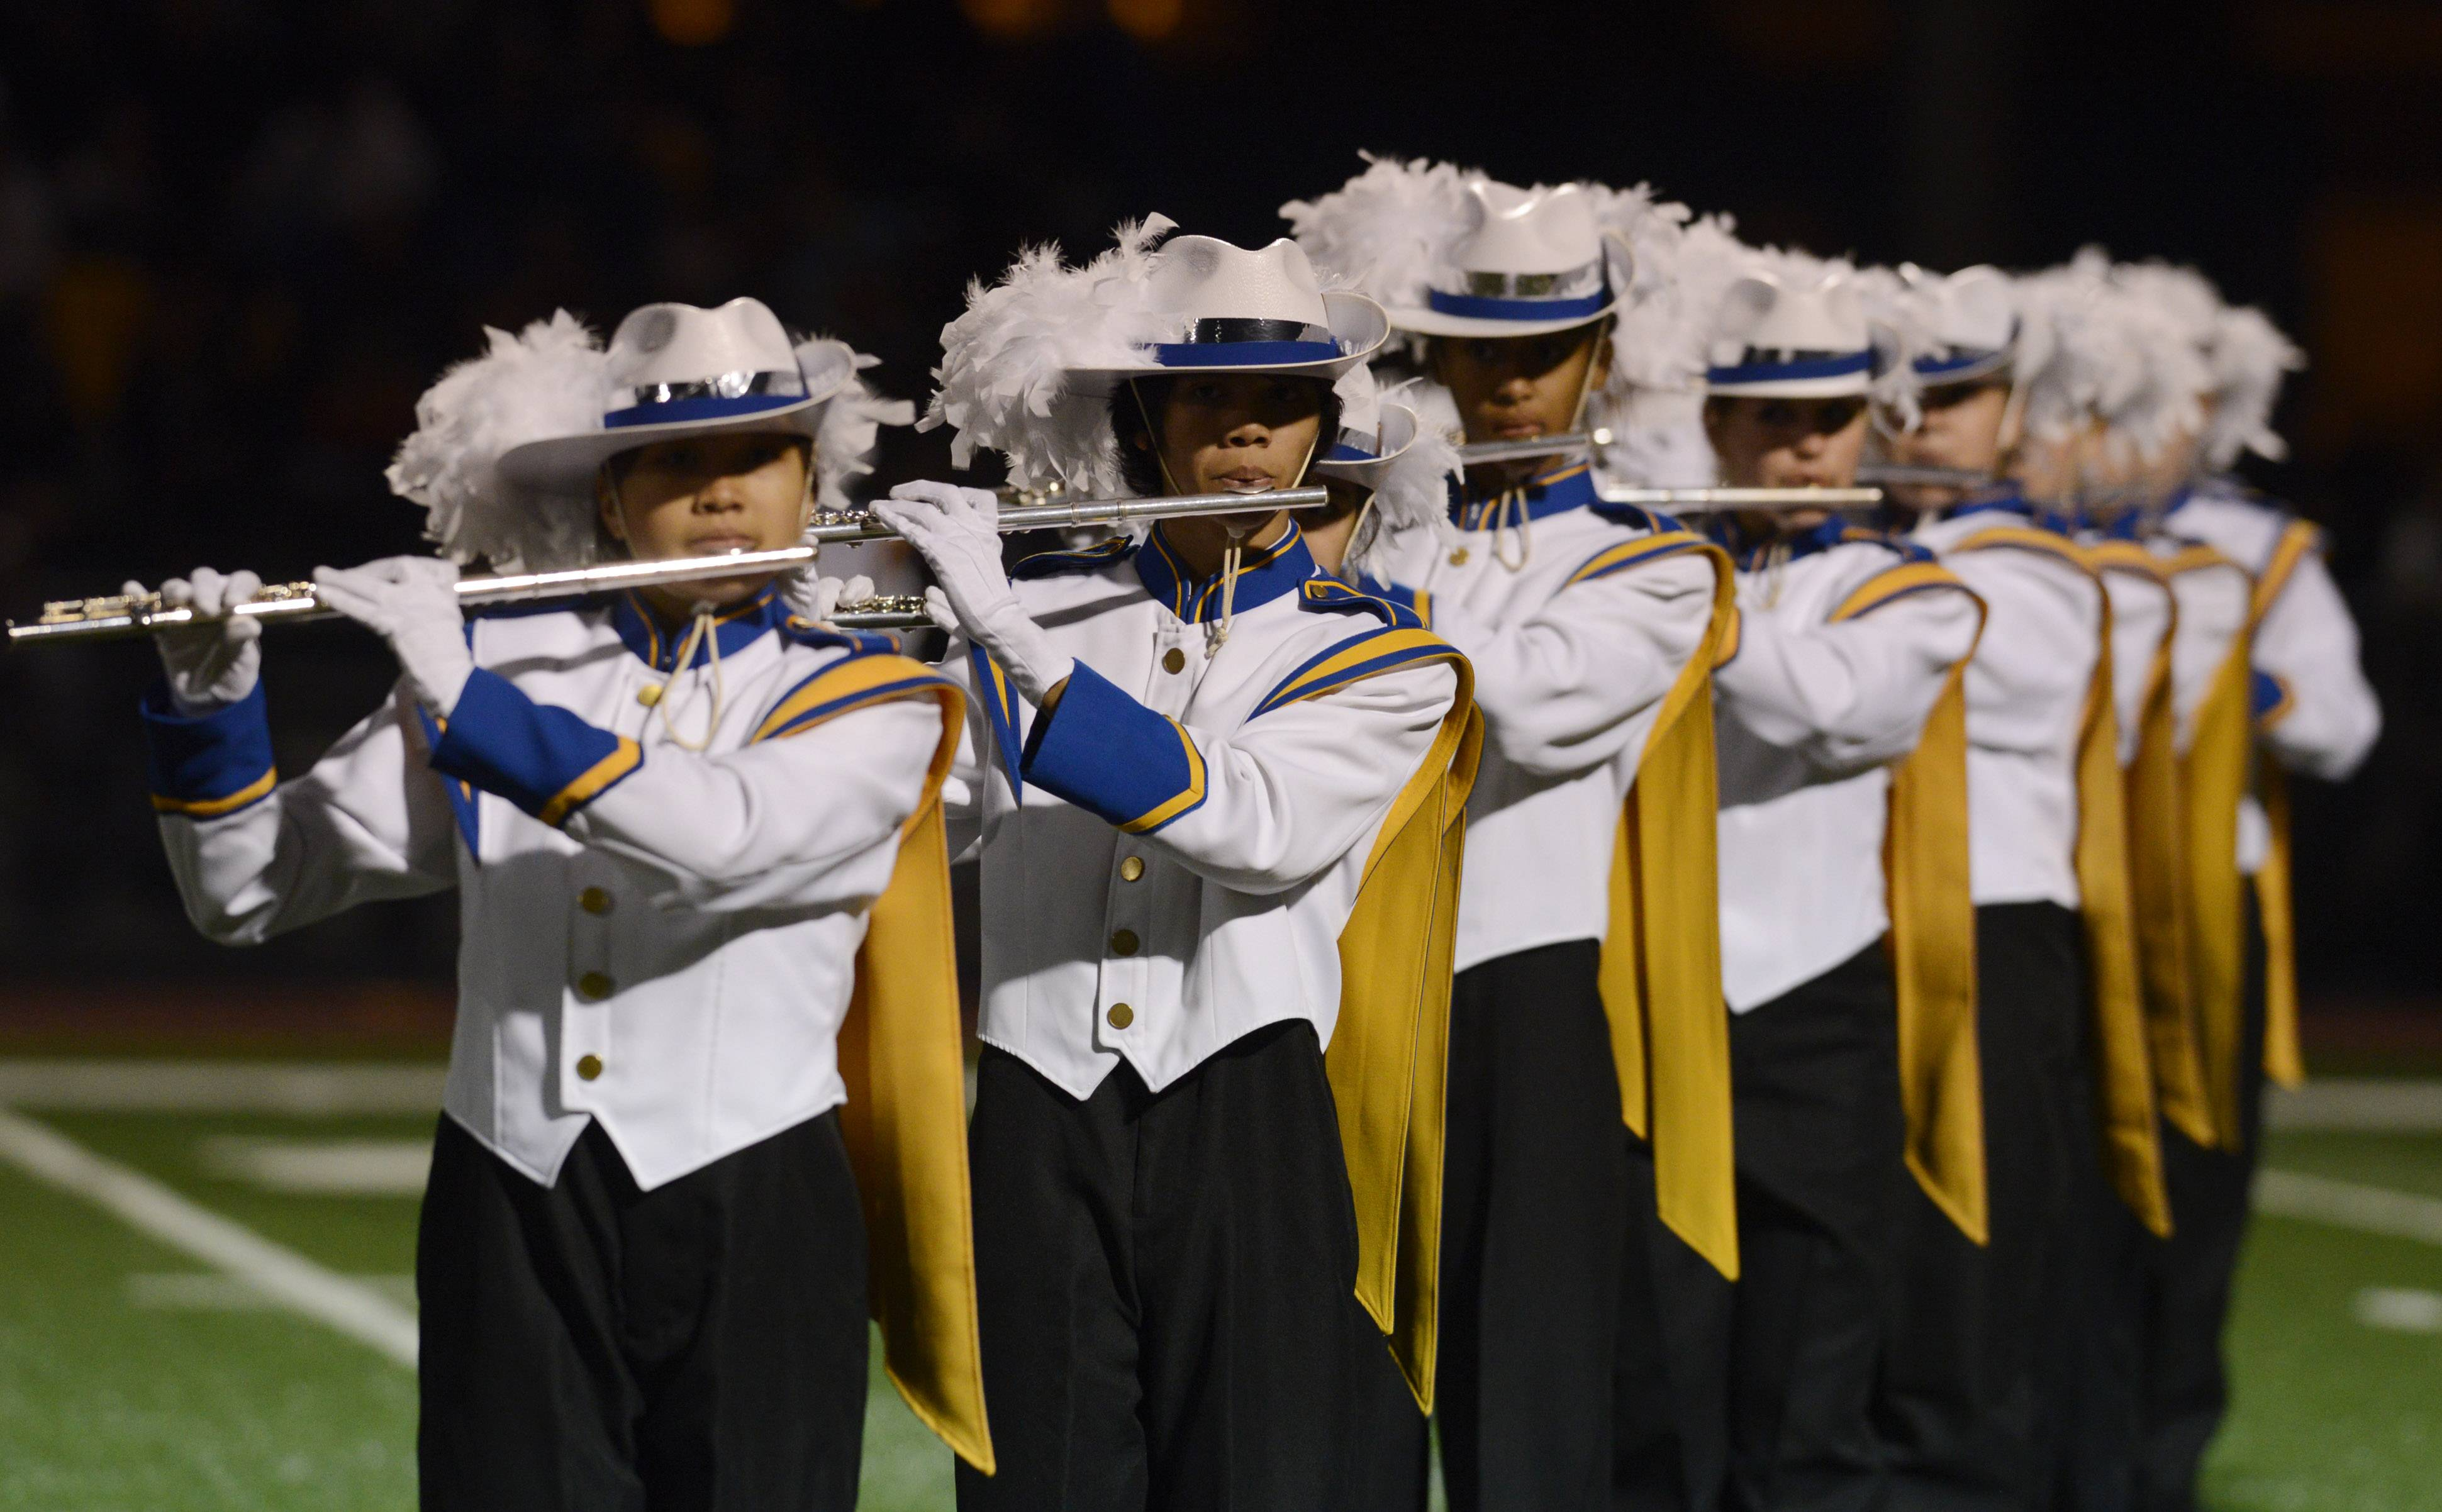 The Warren High School Marching Band performs Saturday during the annual Chicagoland Marching Band Festival at Wheeling High School.